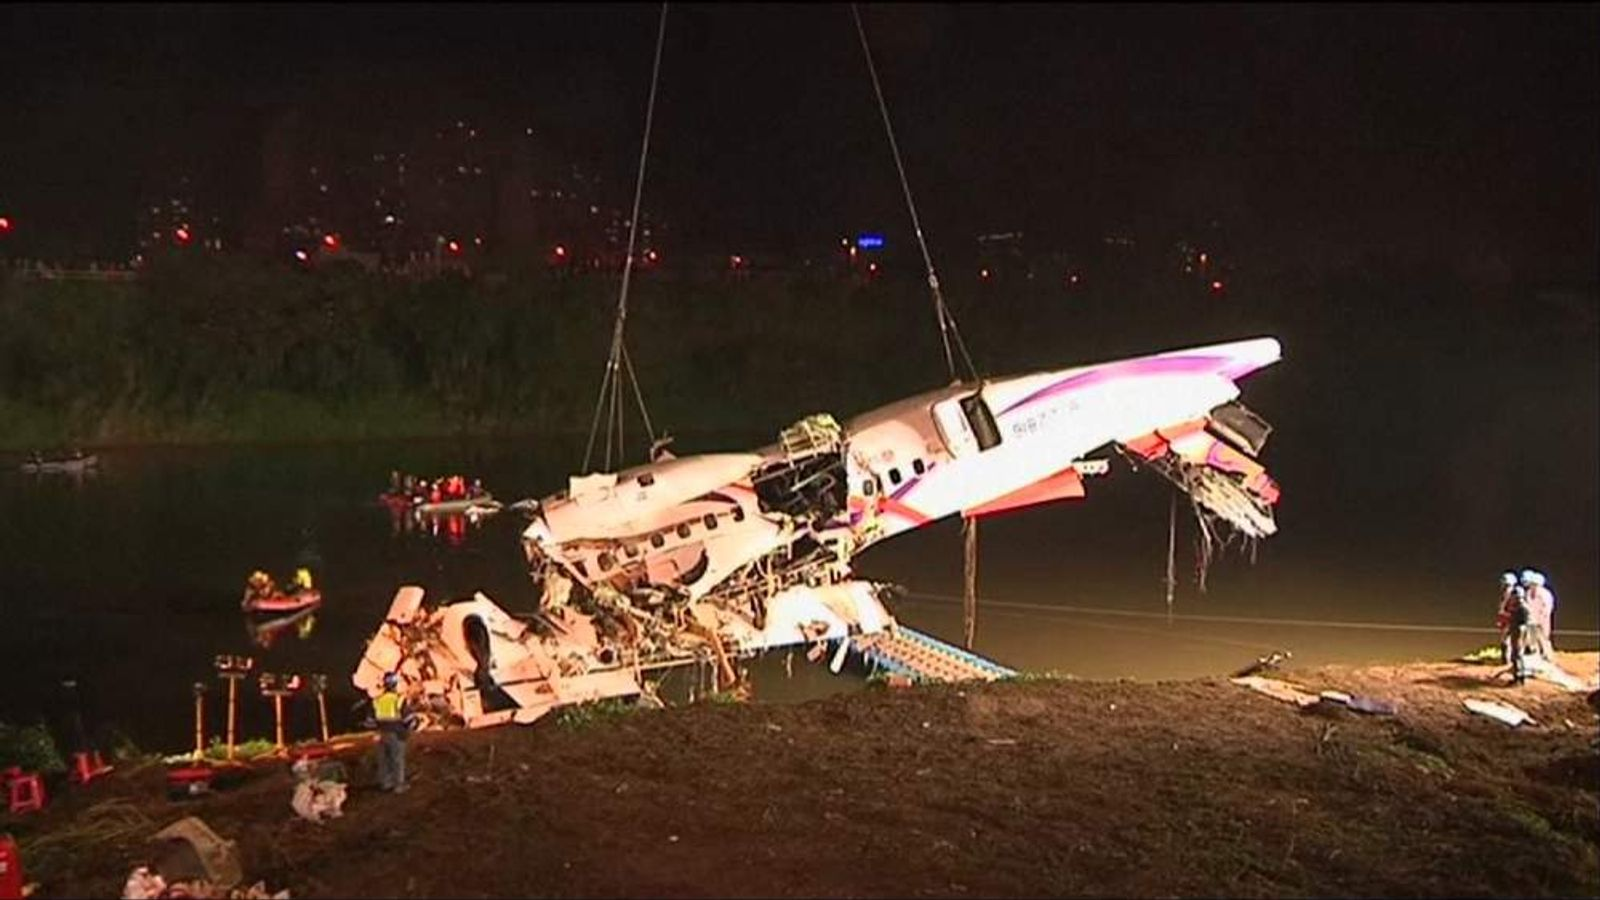 TransAsia plane crashes in a river near Taipei